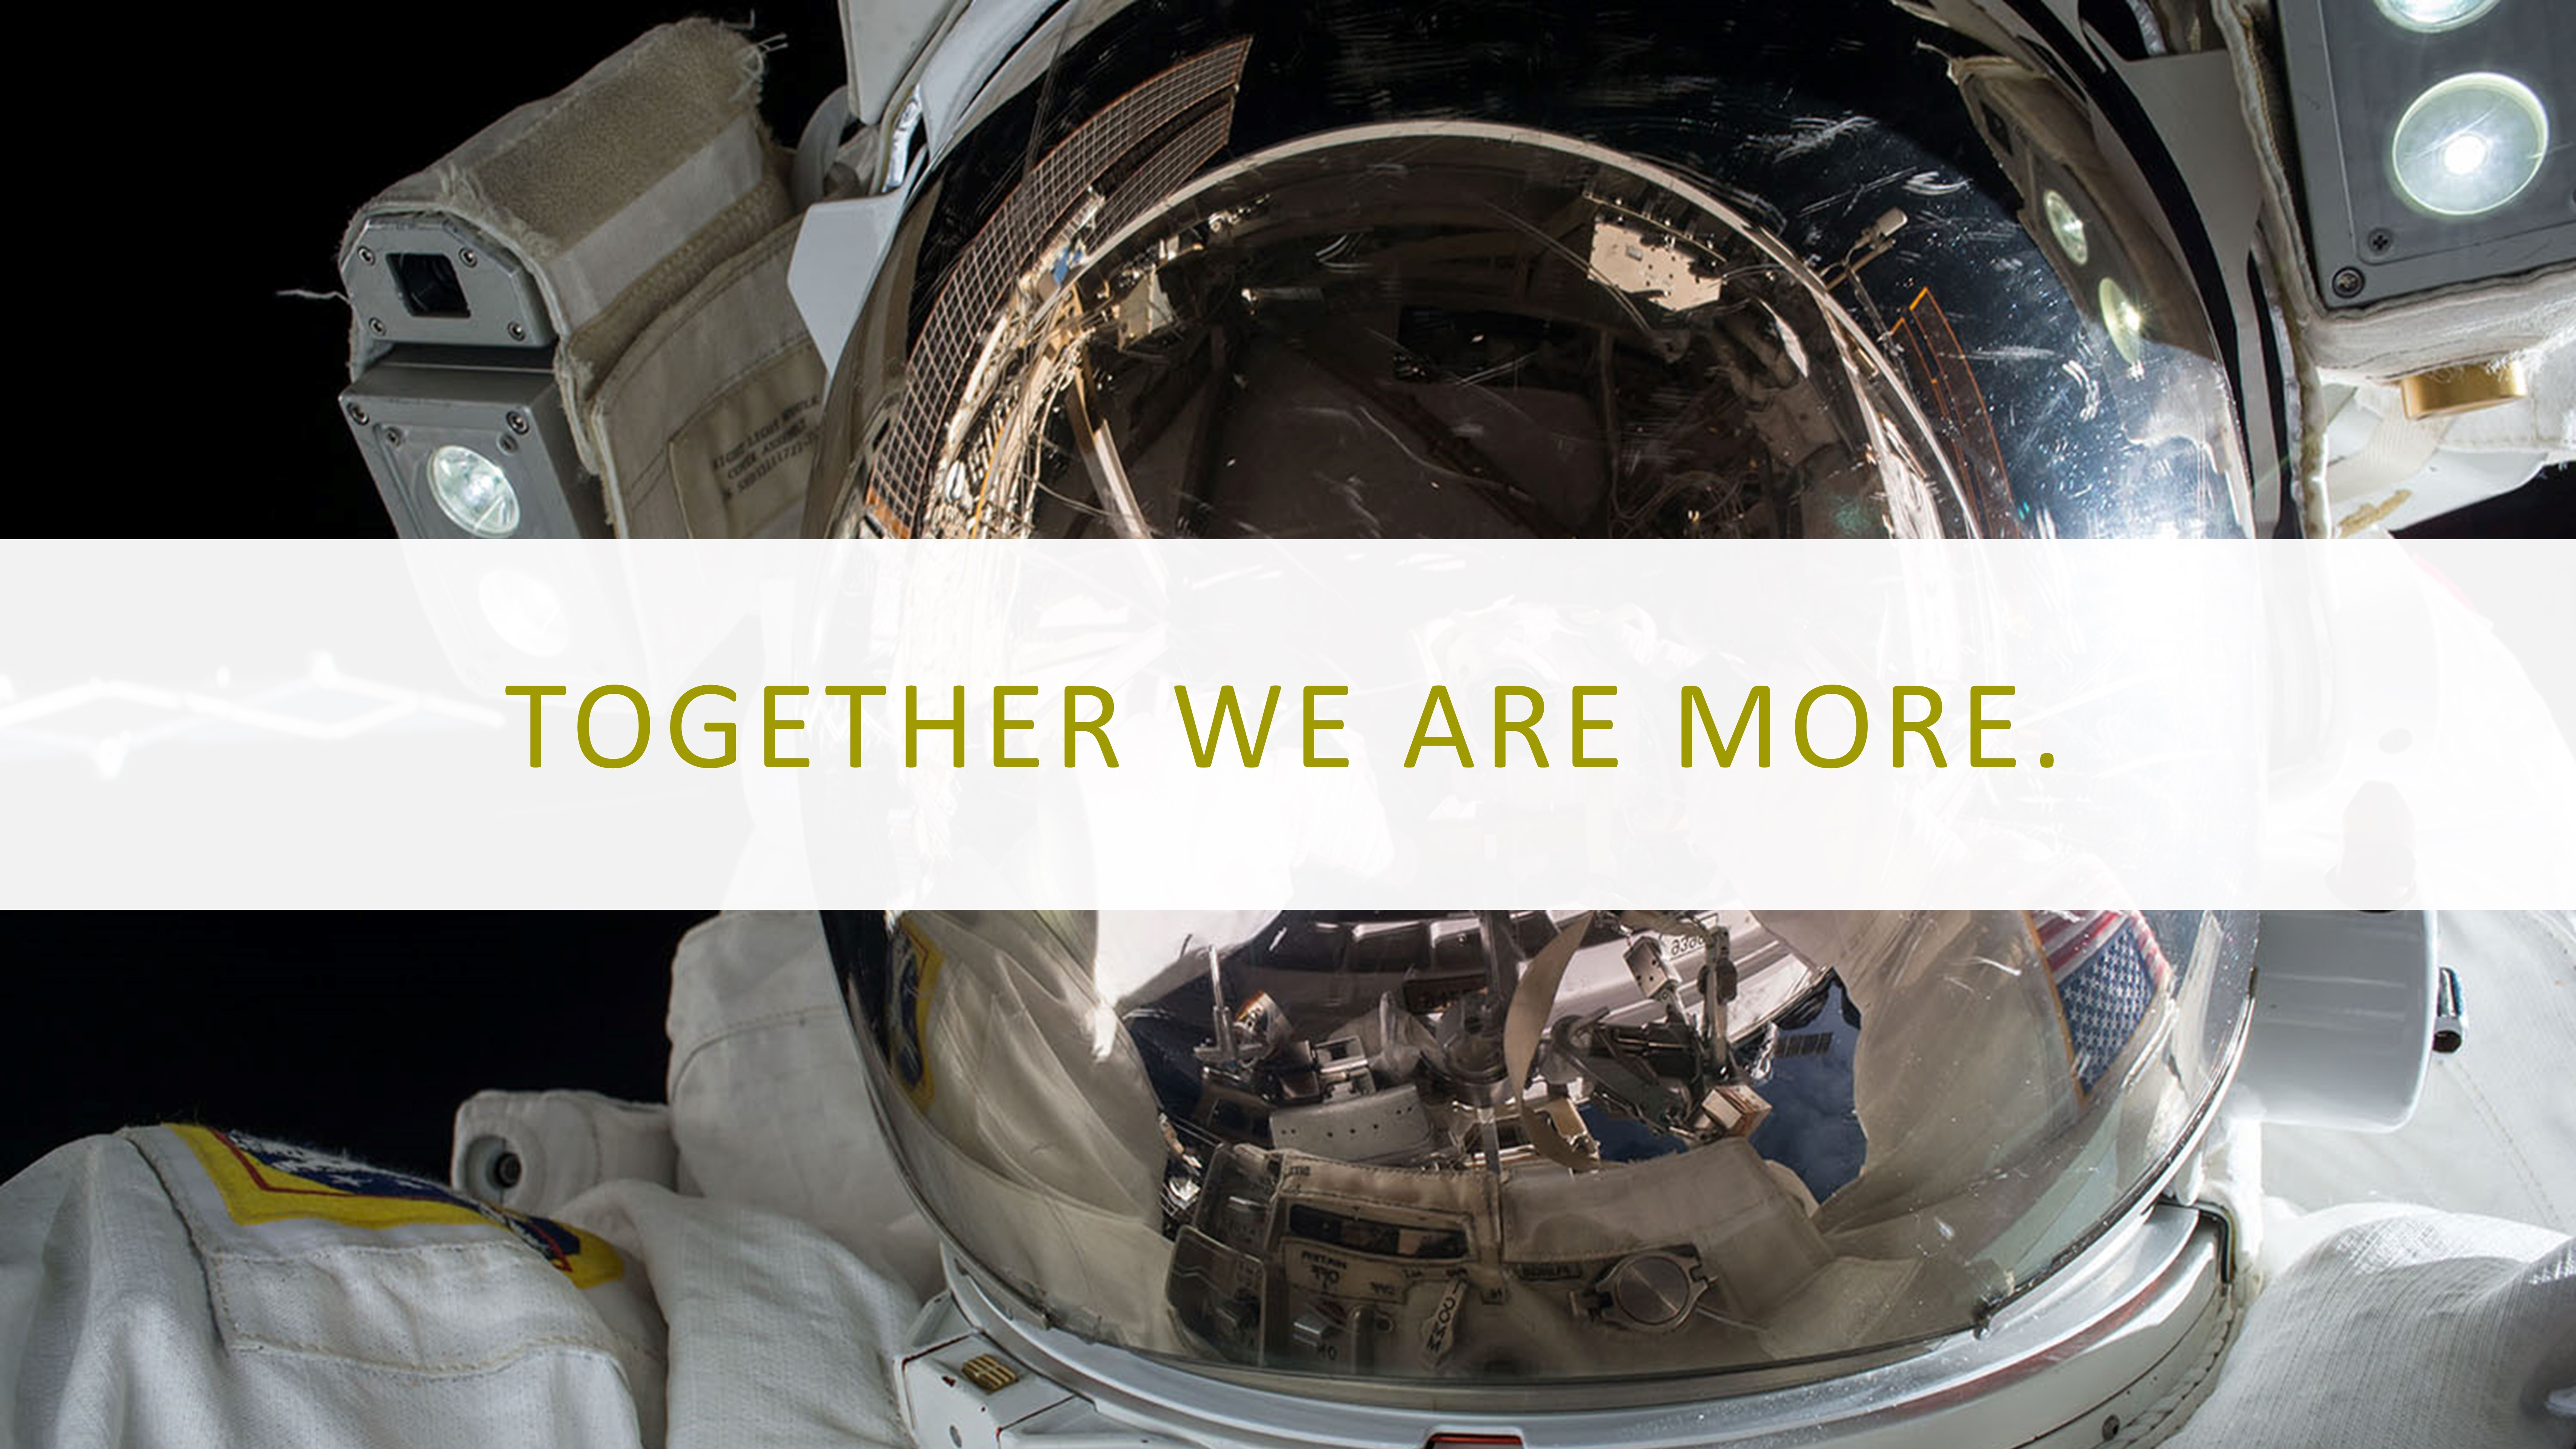 Picture of astronaut with Together We Are More overlaid on a white box